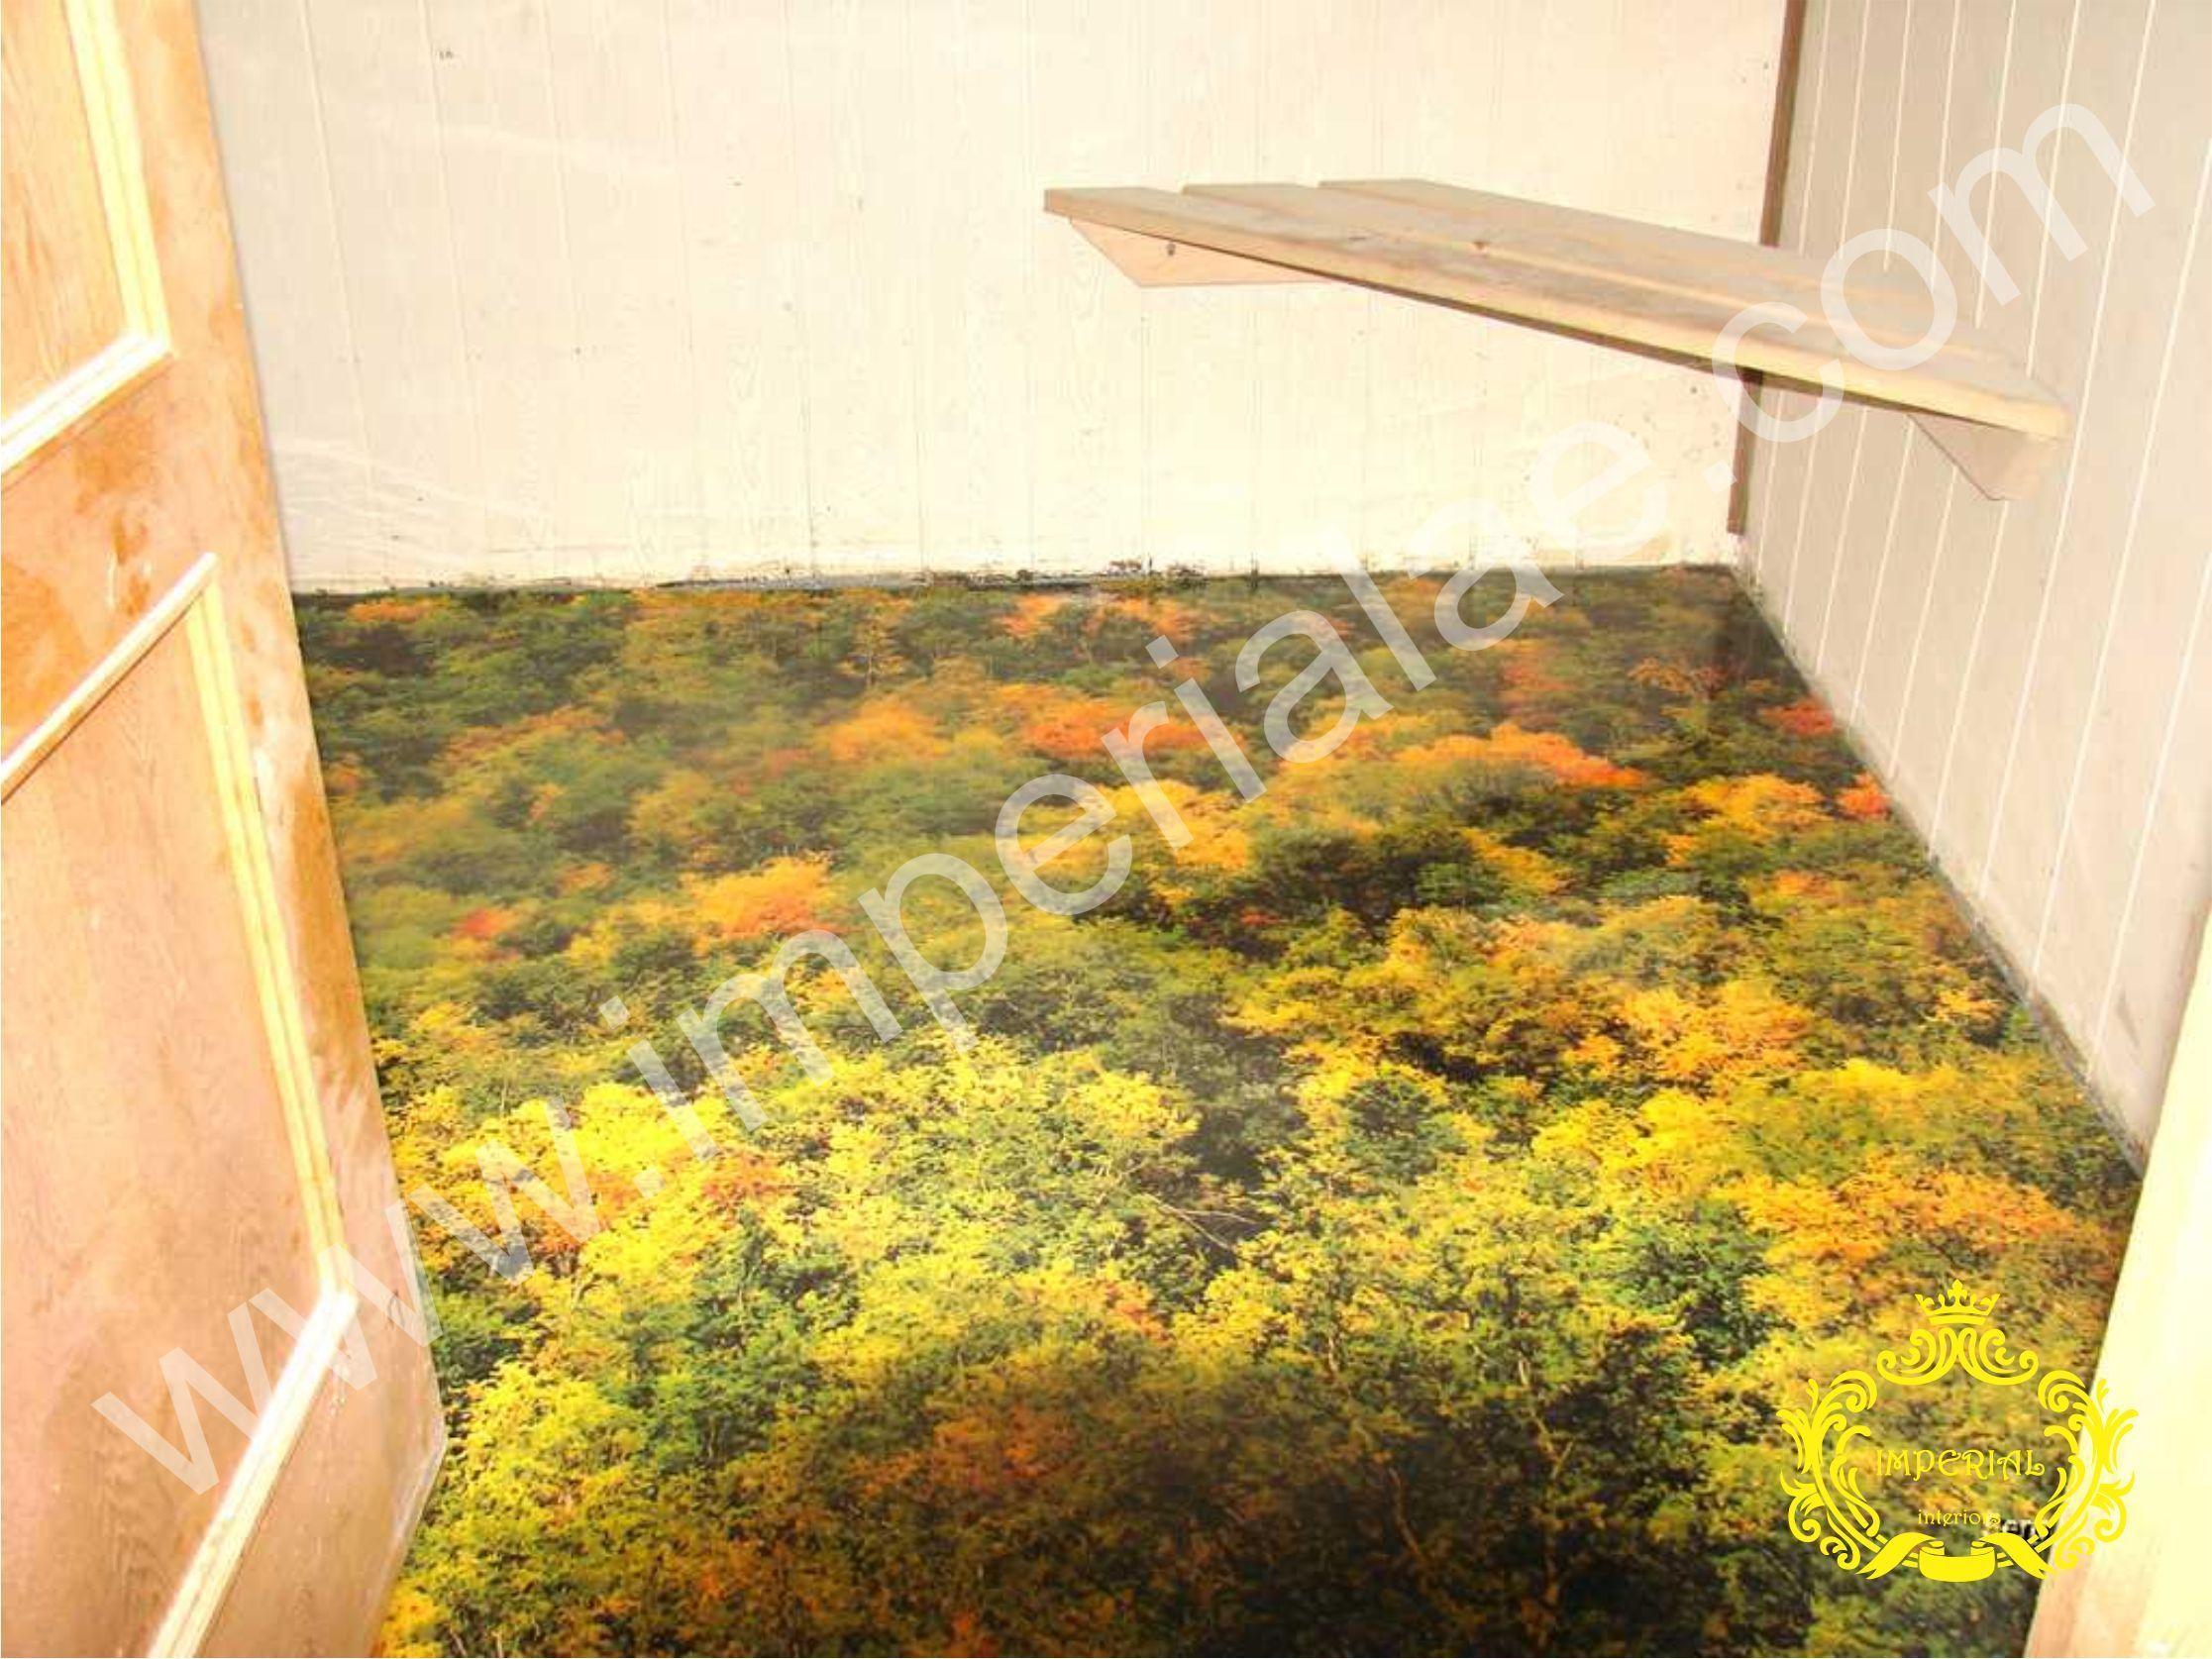 We Specialized In We Specialized In 3d Floors Epoxy Floor 3d 3d Flooring Illusion Toilet Beach Floor Murals 3d Ep Epoxy Floor Epoxy Floor 3d 3d Flooring